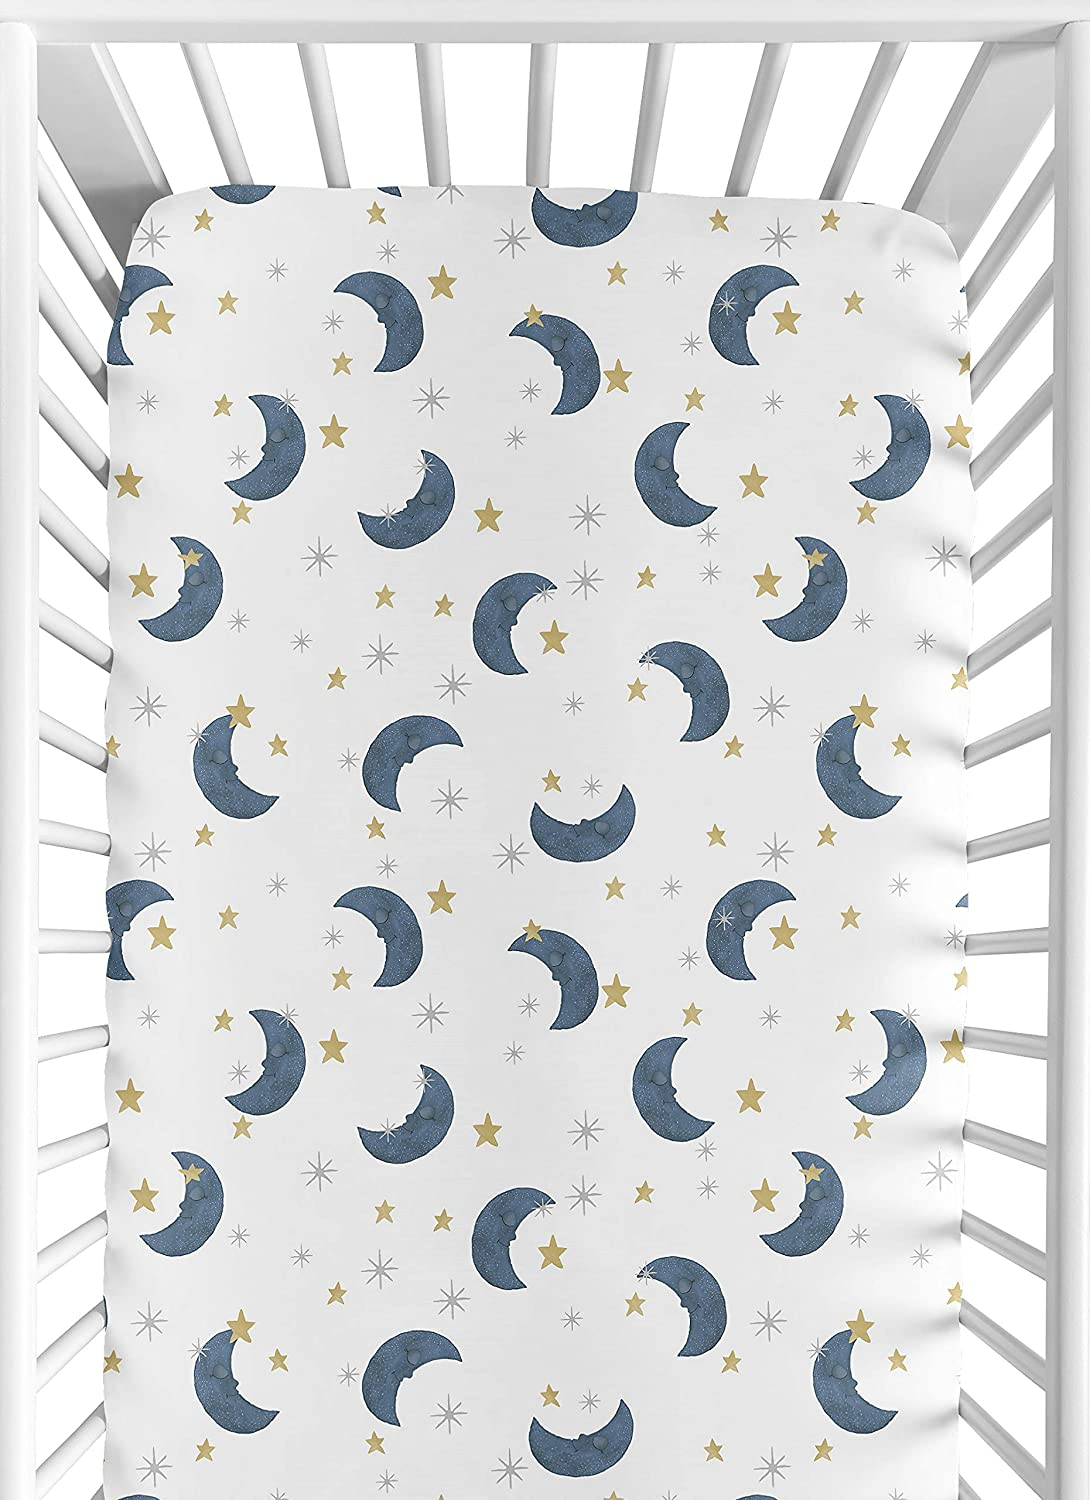 Sweet Jojo Designs Moon and Star Boy or Girl Fitted Crib Sheet Baby or Toddler Bed Nursery - Navy Blue and Gold Watercolor Celestial Sky